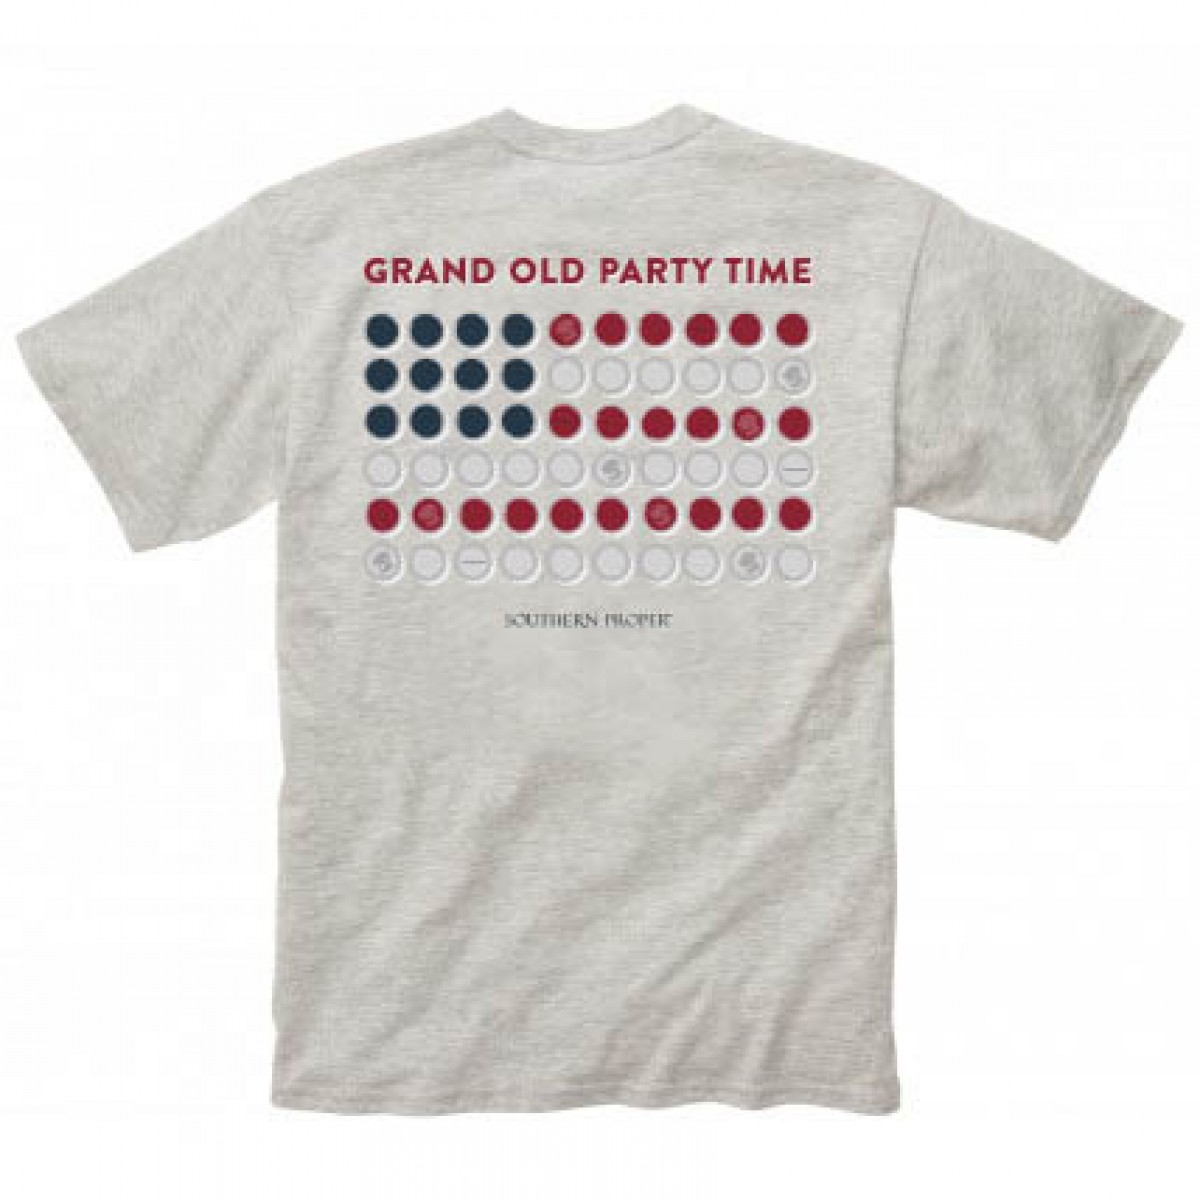 Grand Old Party Tee: Heather Grey Short Sleeve